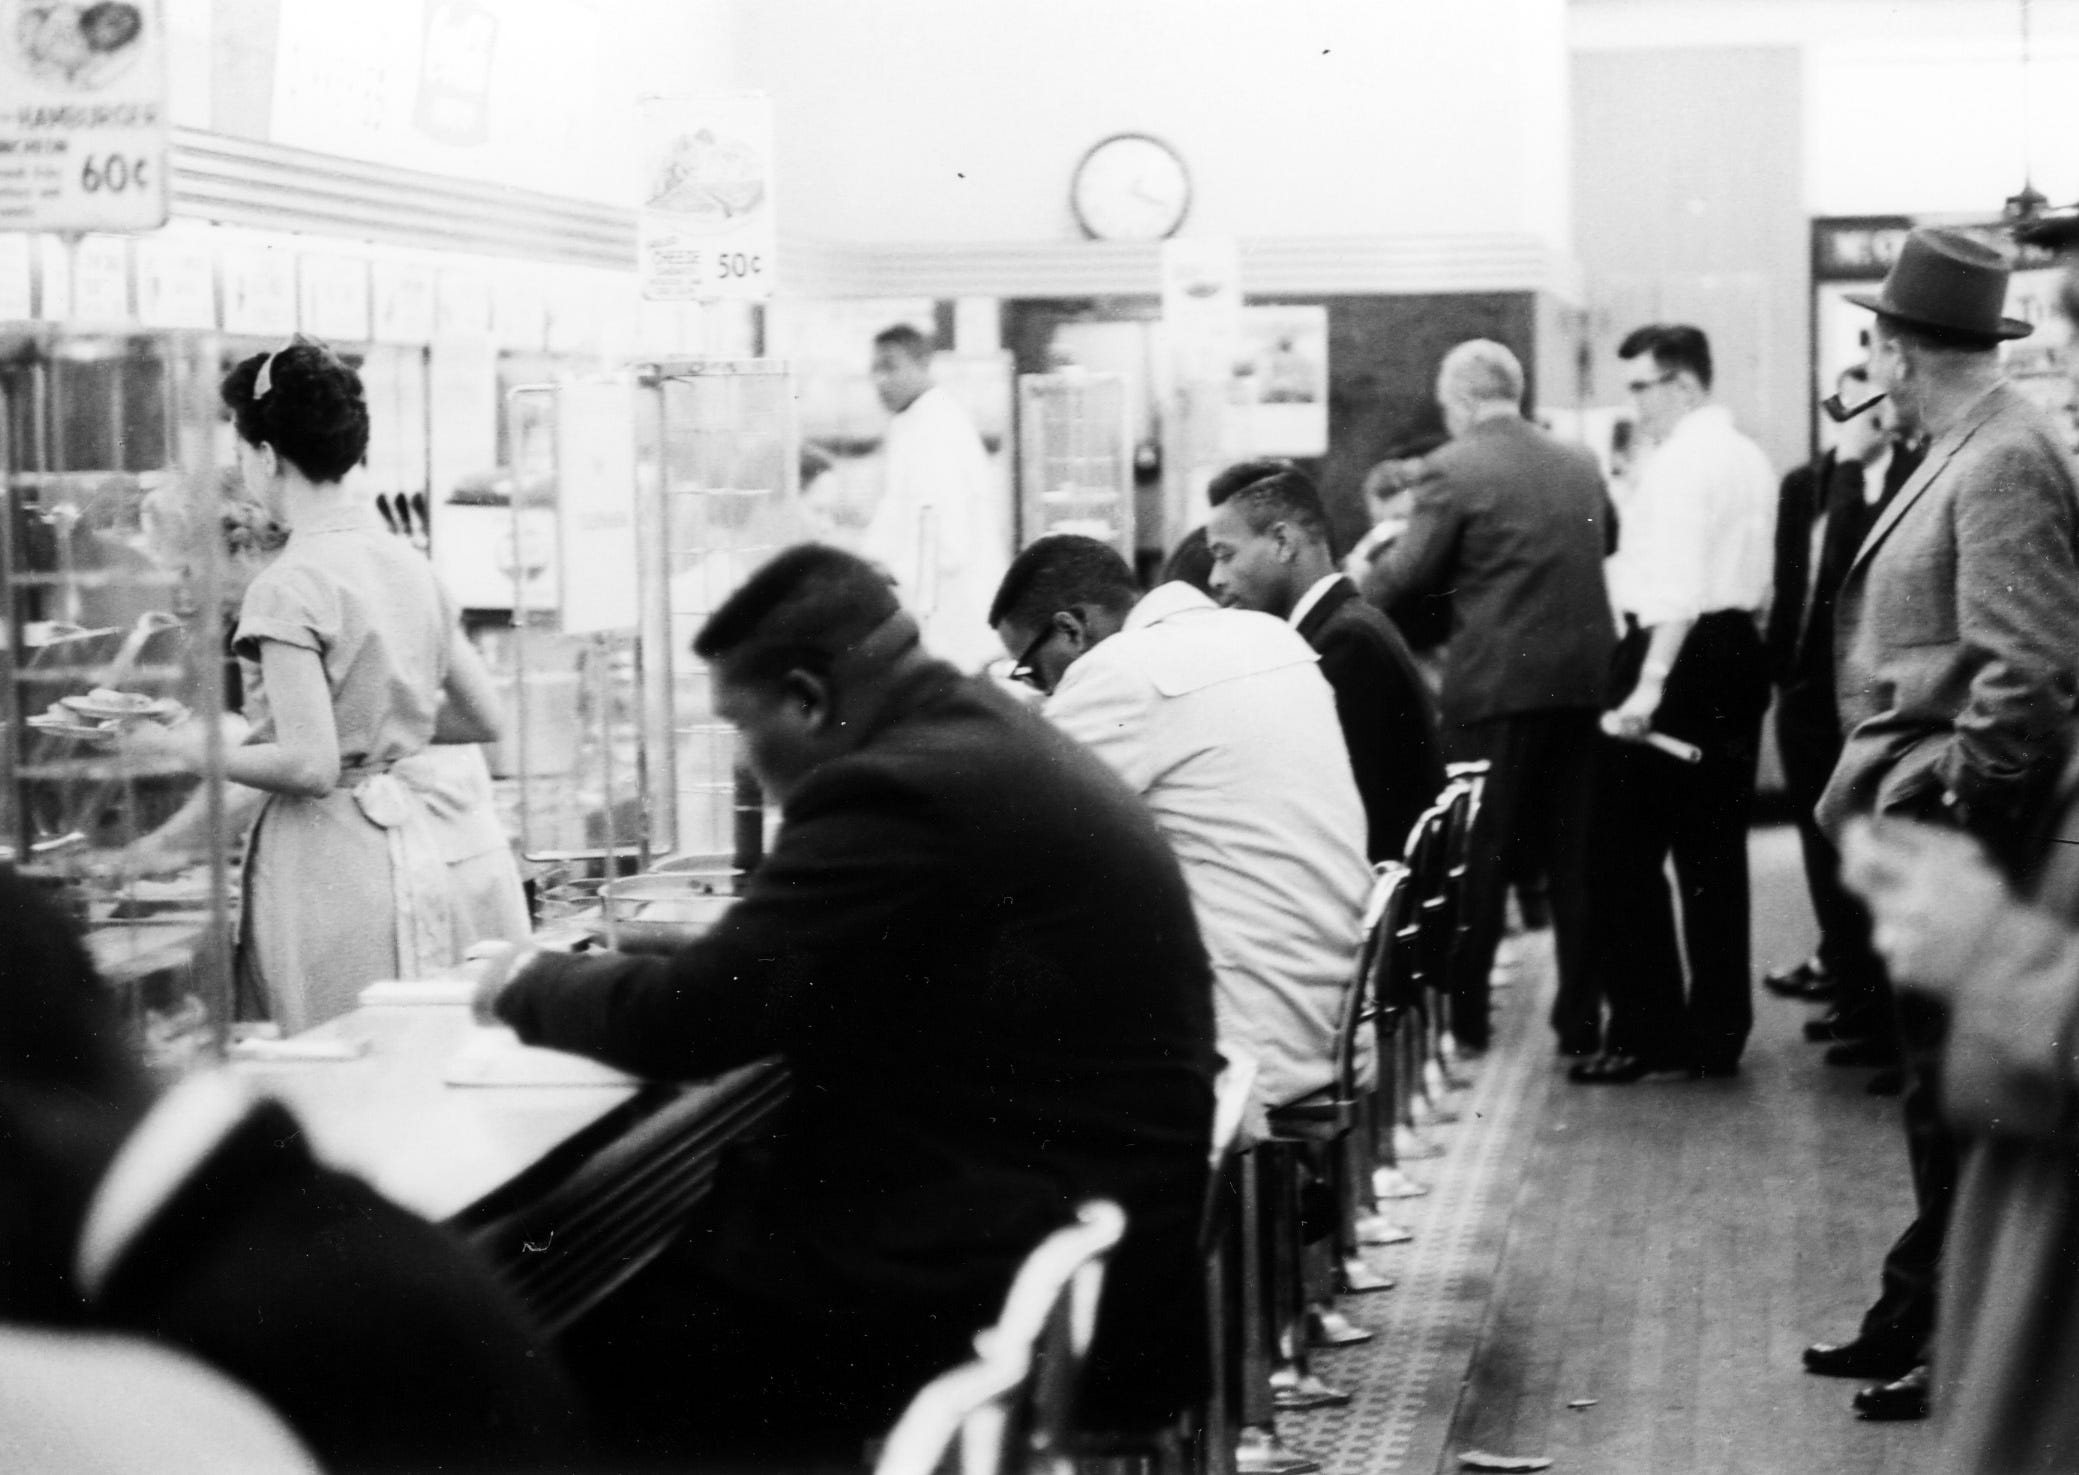 """In this February 1960 file photo, people take part in a civil rights """"sit-in"""" protest at the lunch counter in McCrory's Five & Dime in Rock Hill, S.C."""